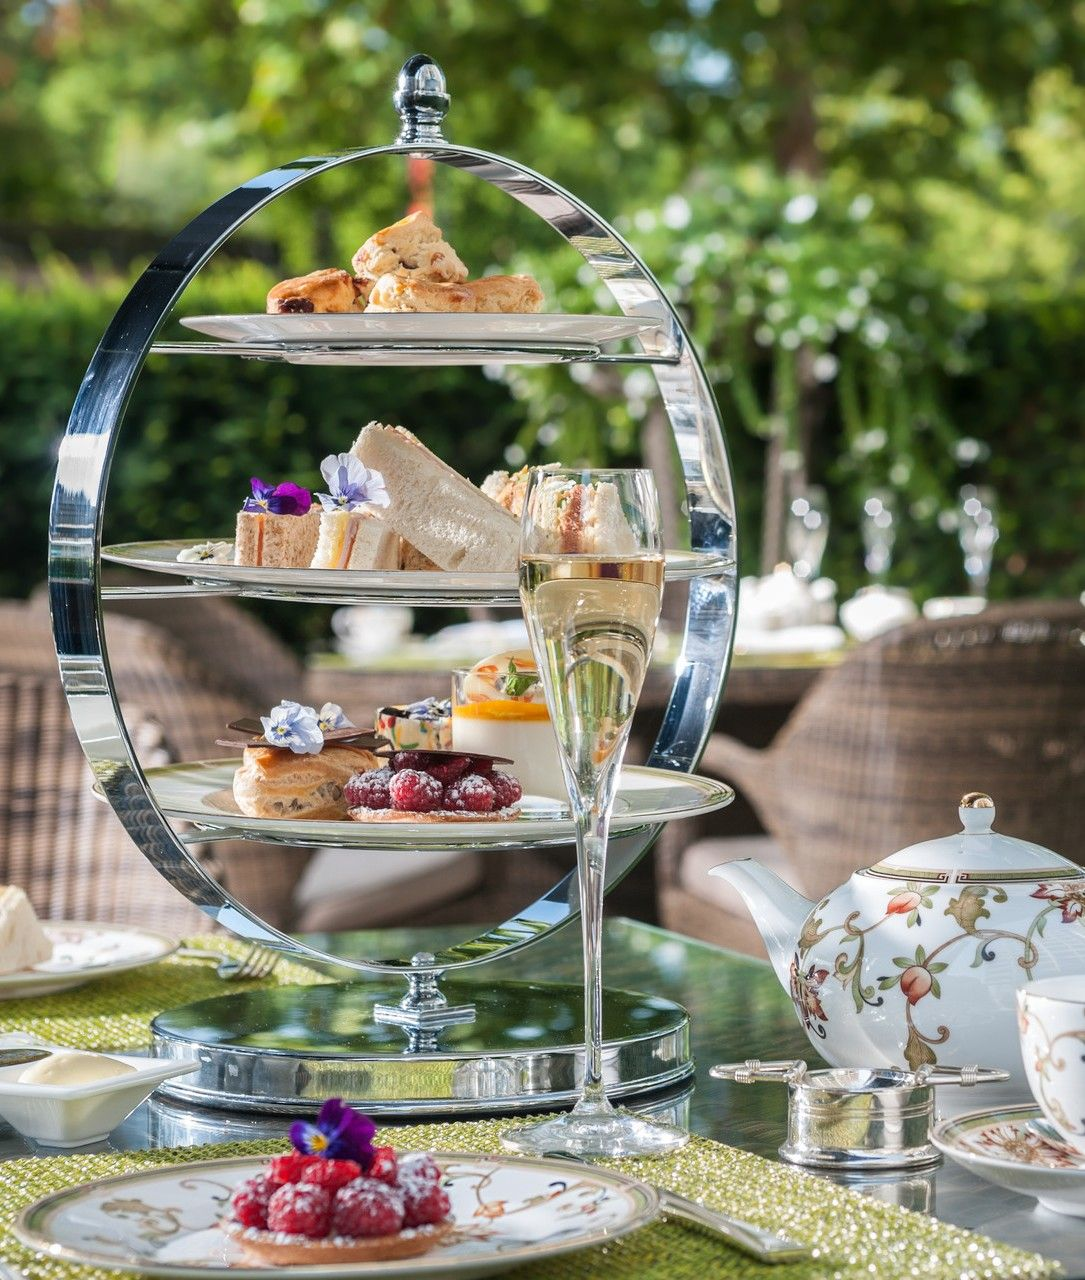 You haven't had 'proper' high tea until you've had it in